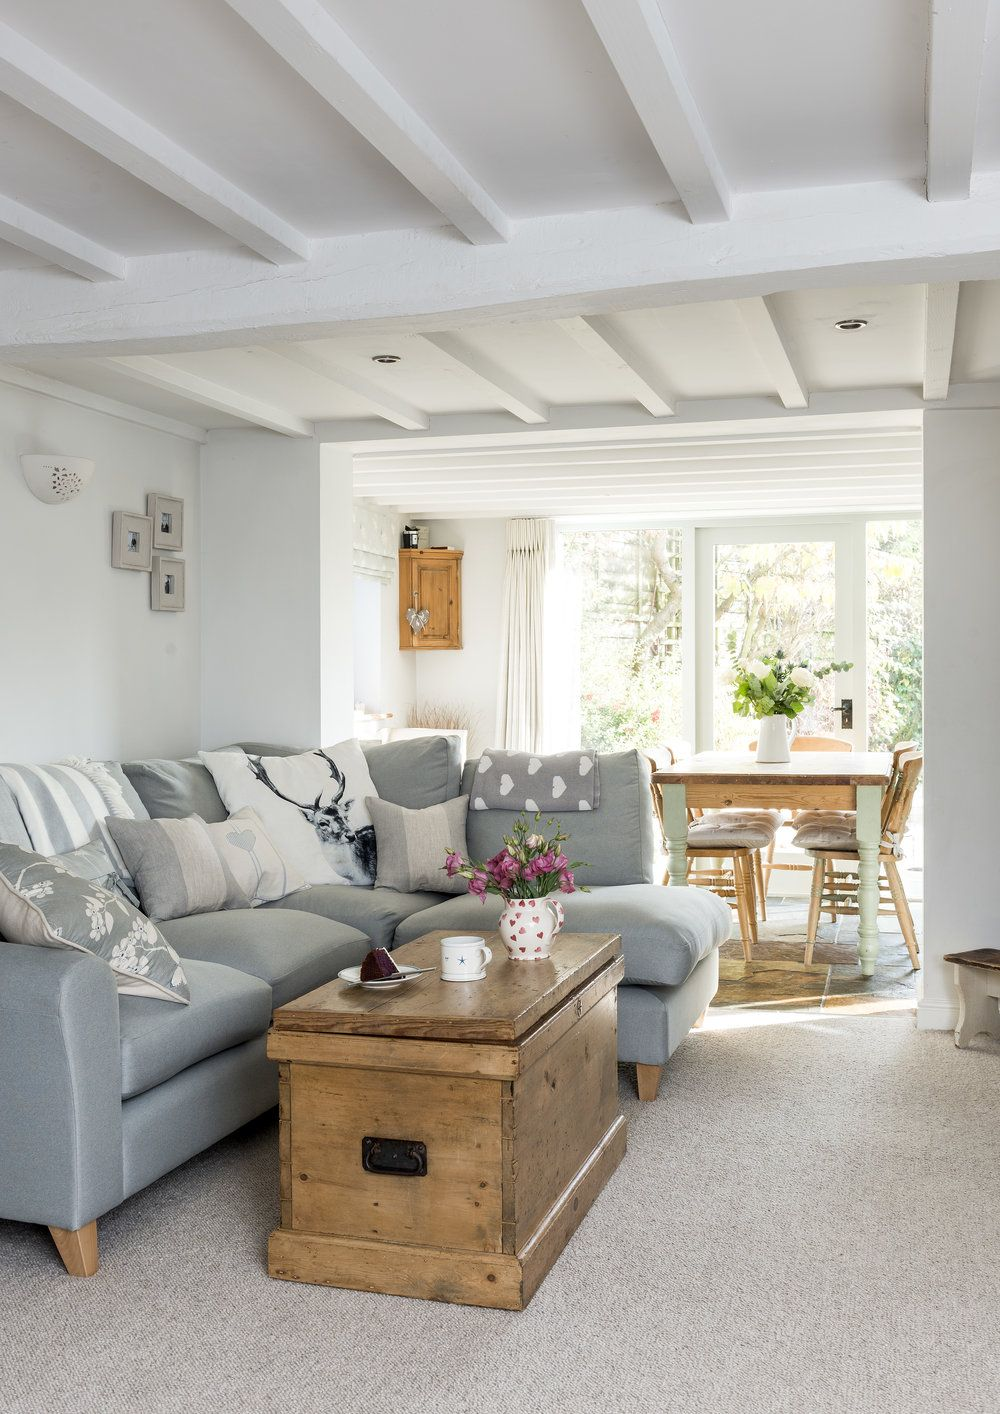 Nicky Keen-042.jpg | Home ideas | Pinterest | Living rooms, Room and ...